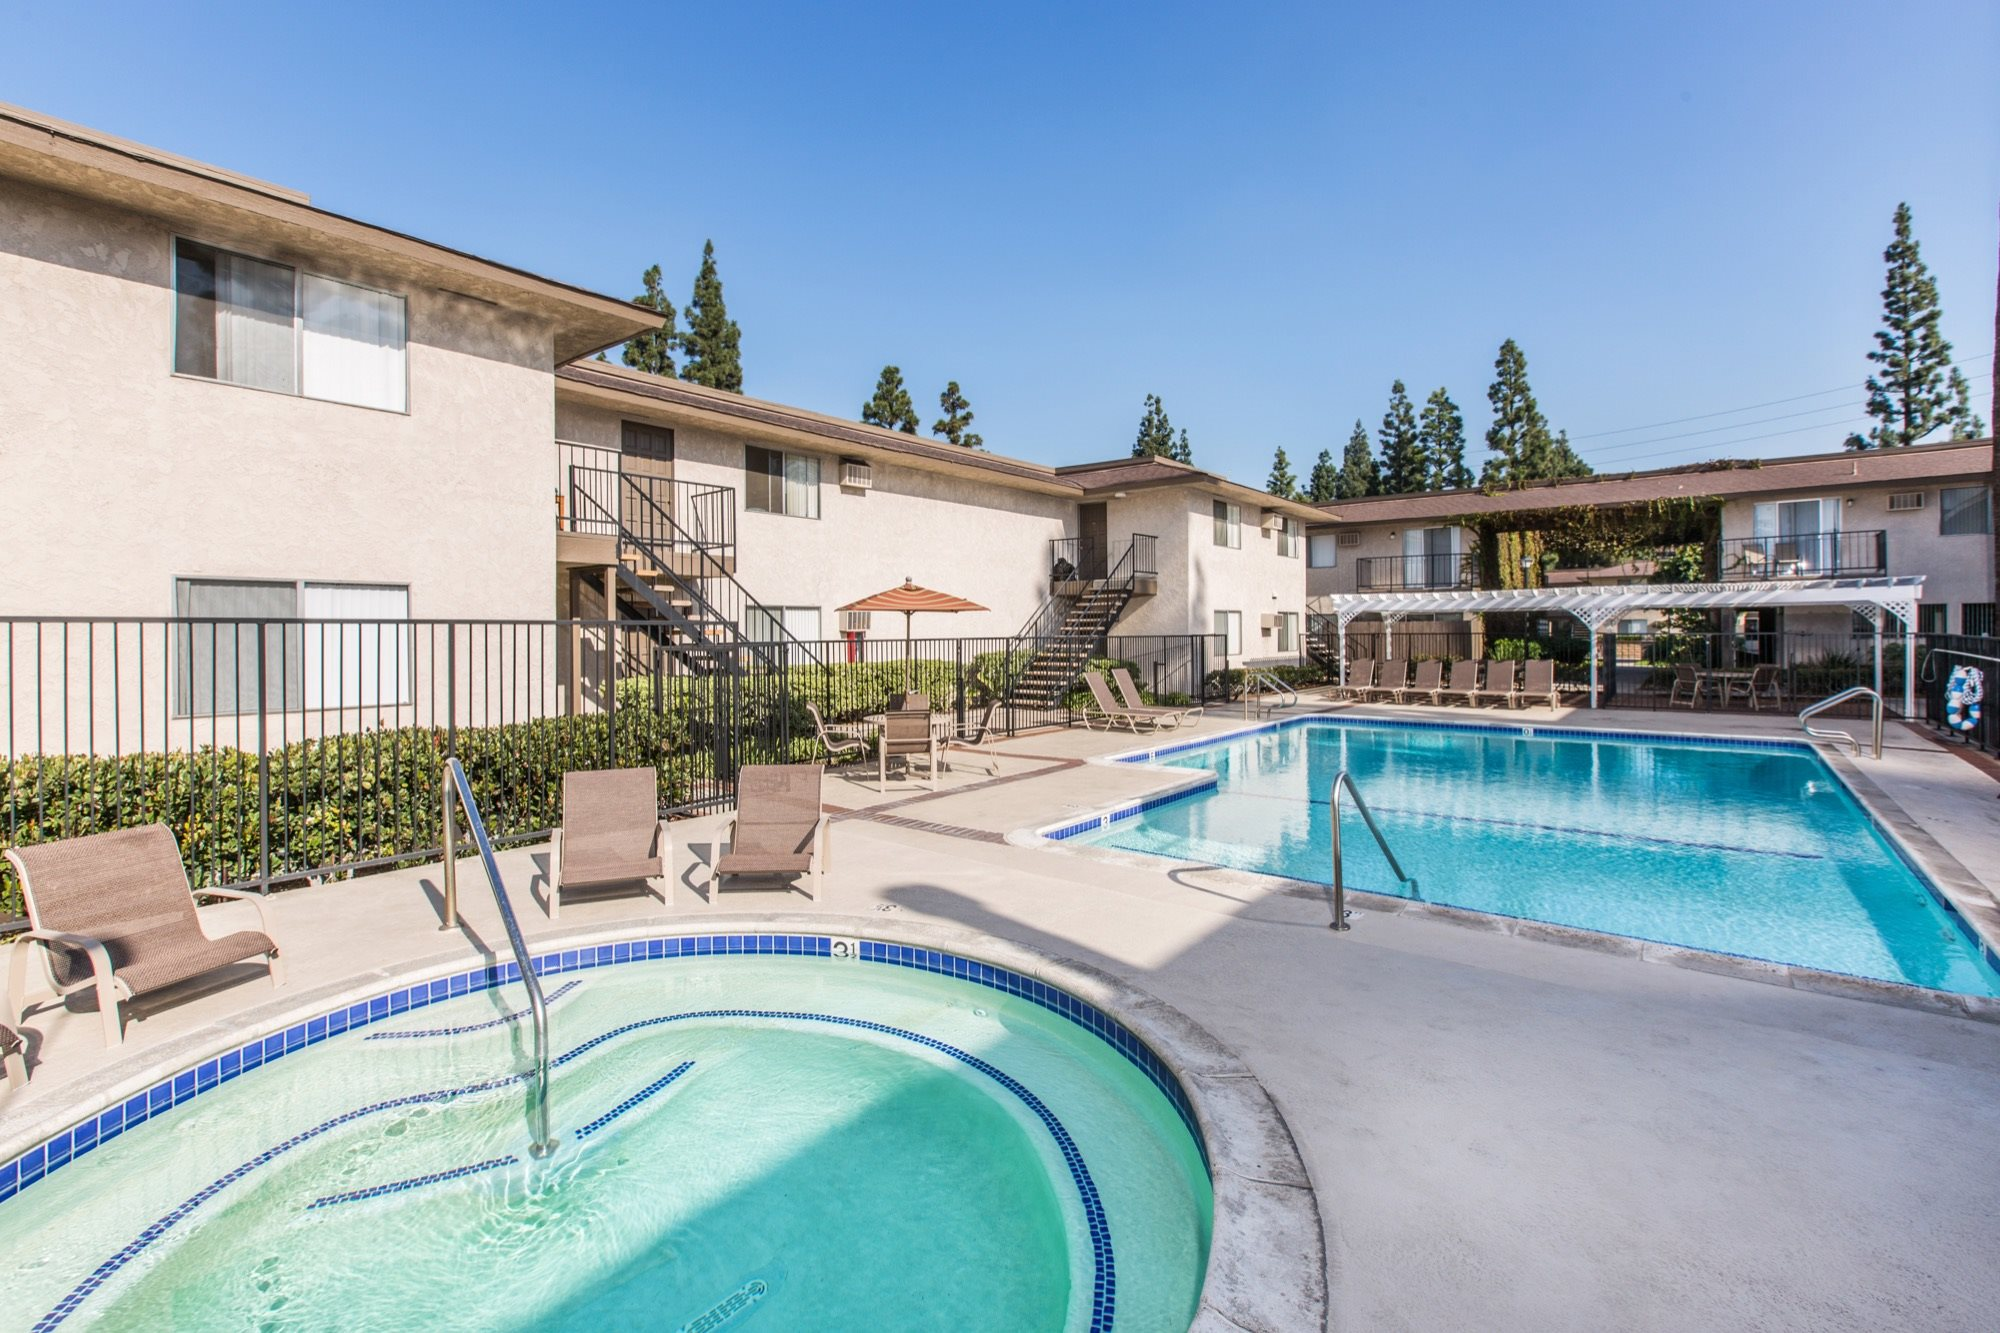 Orange grove apartments in garden grove ca for Leslie pool garden grove